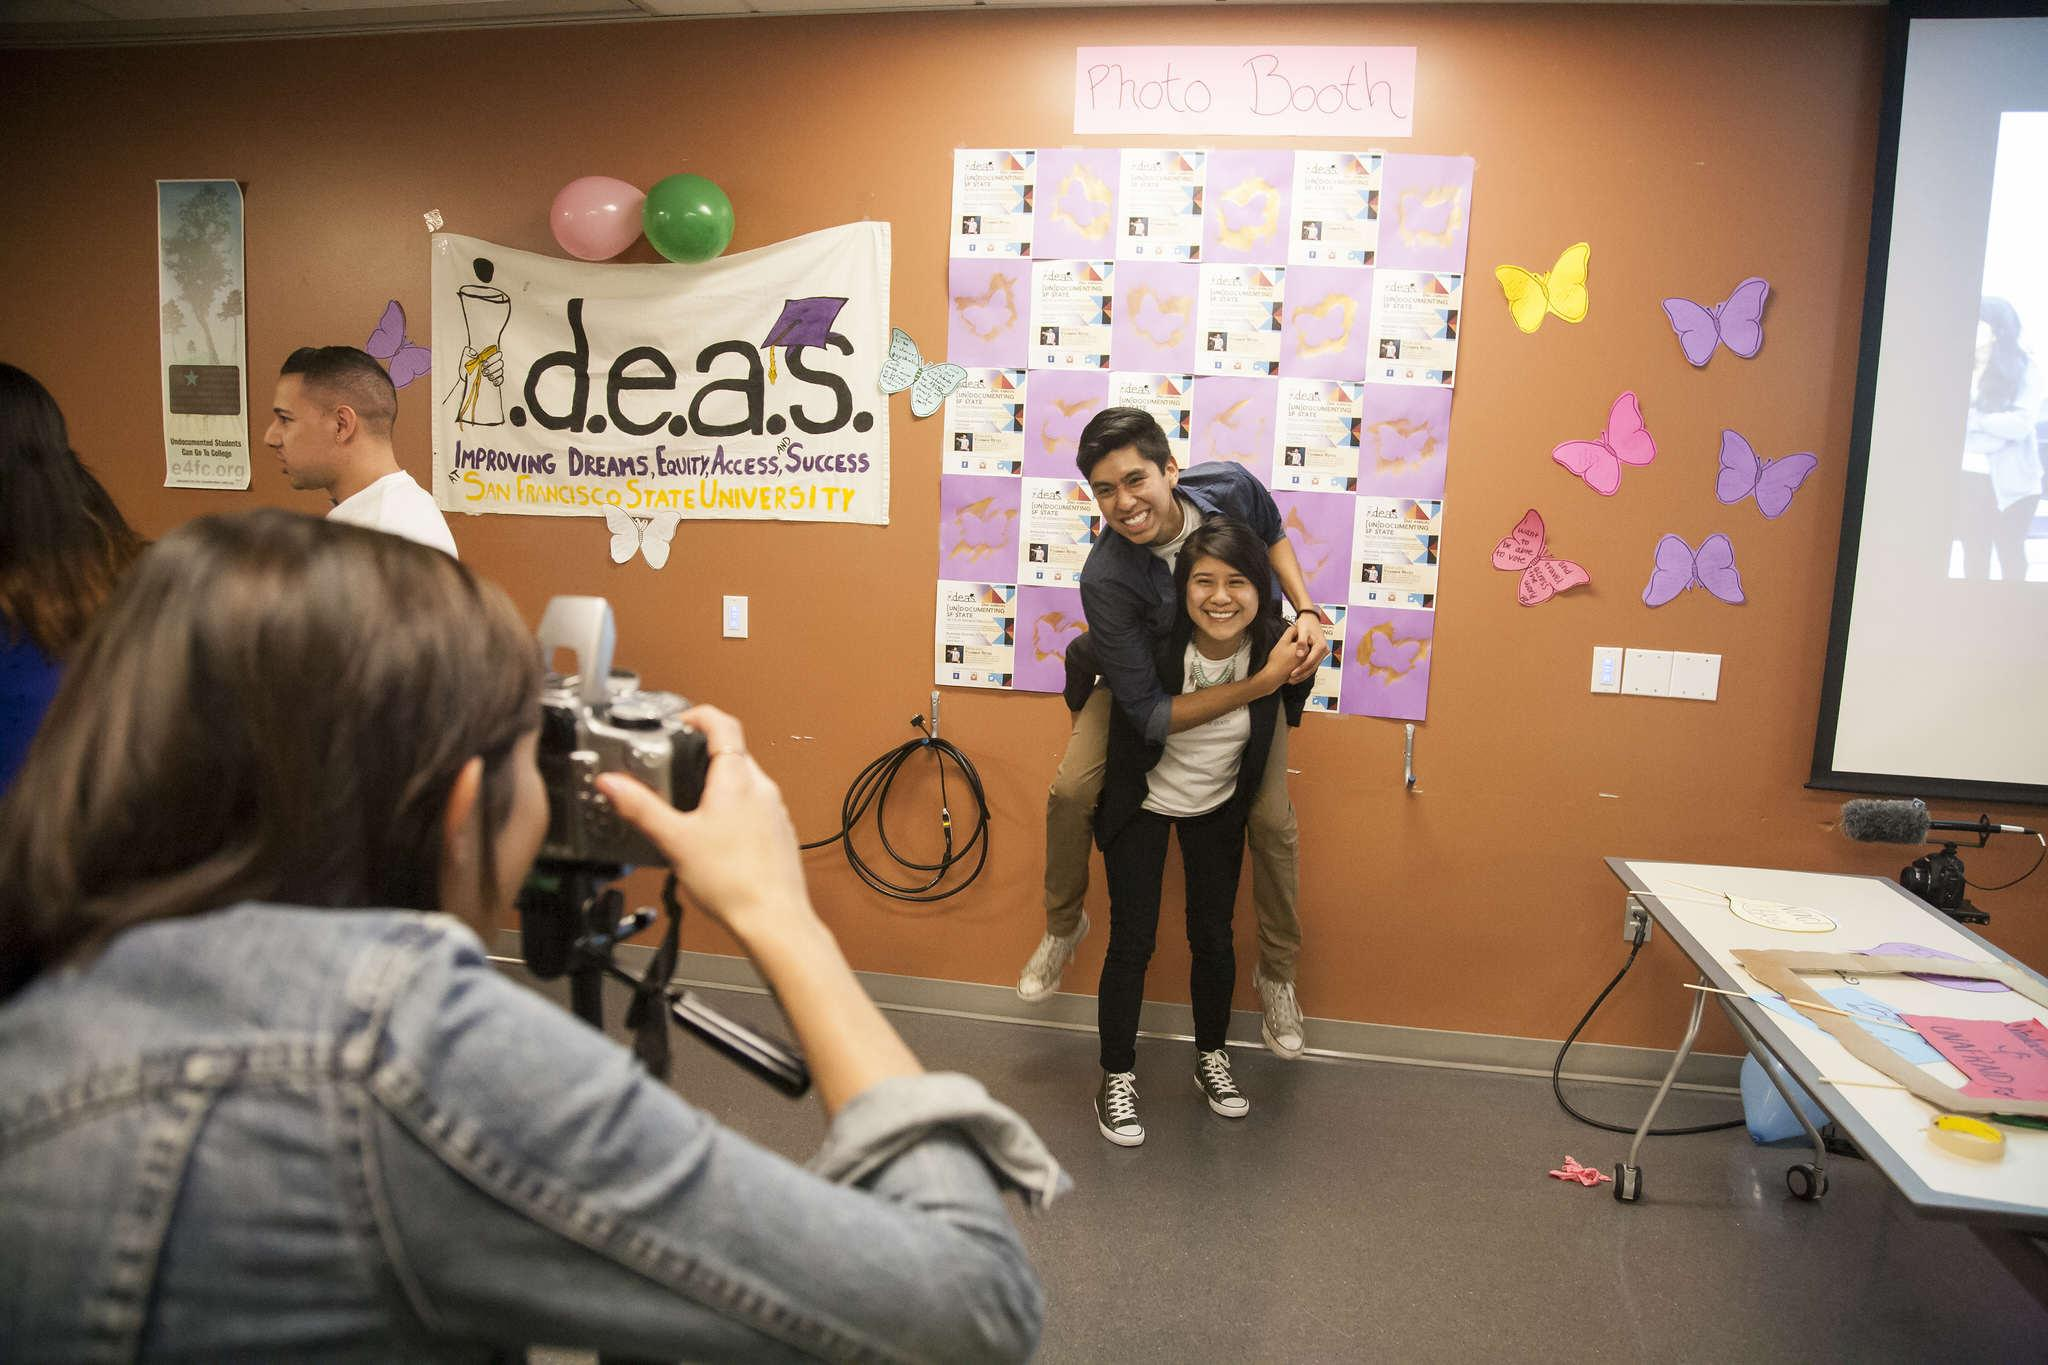 Miguel Castillo and Ana Morales pose for a photo in front of the make shift photobooth at the IDEAS meeting in the library Wednesday, Nov. 12, 2014. Martin Bustamante/Xpress.